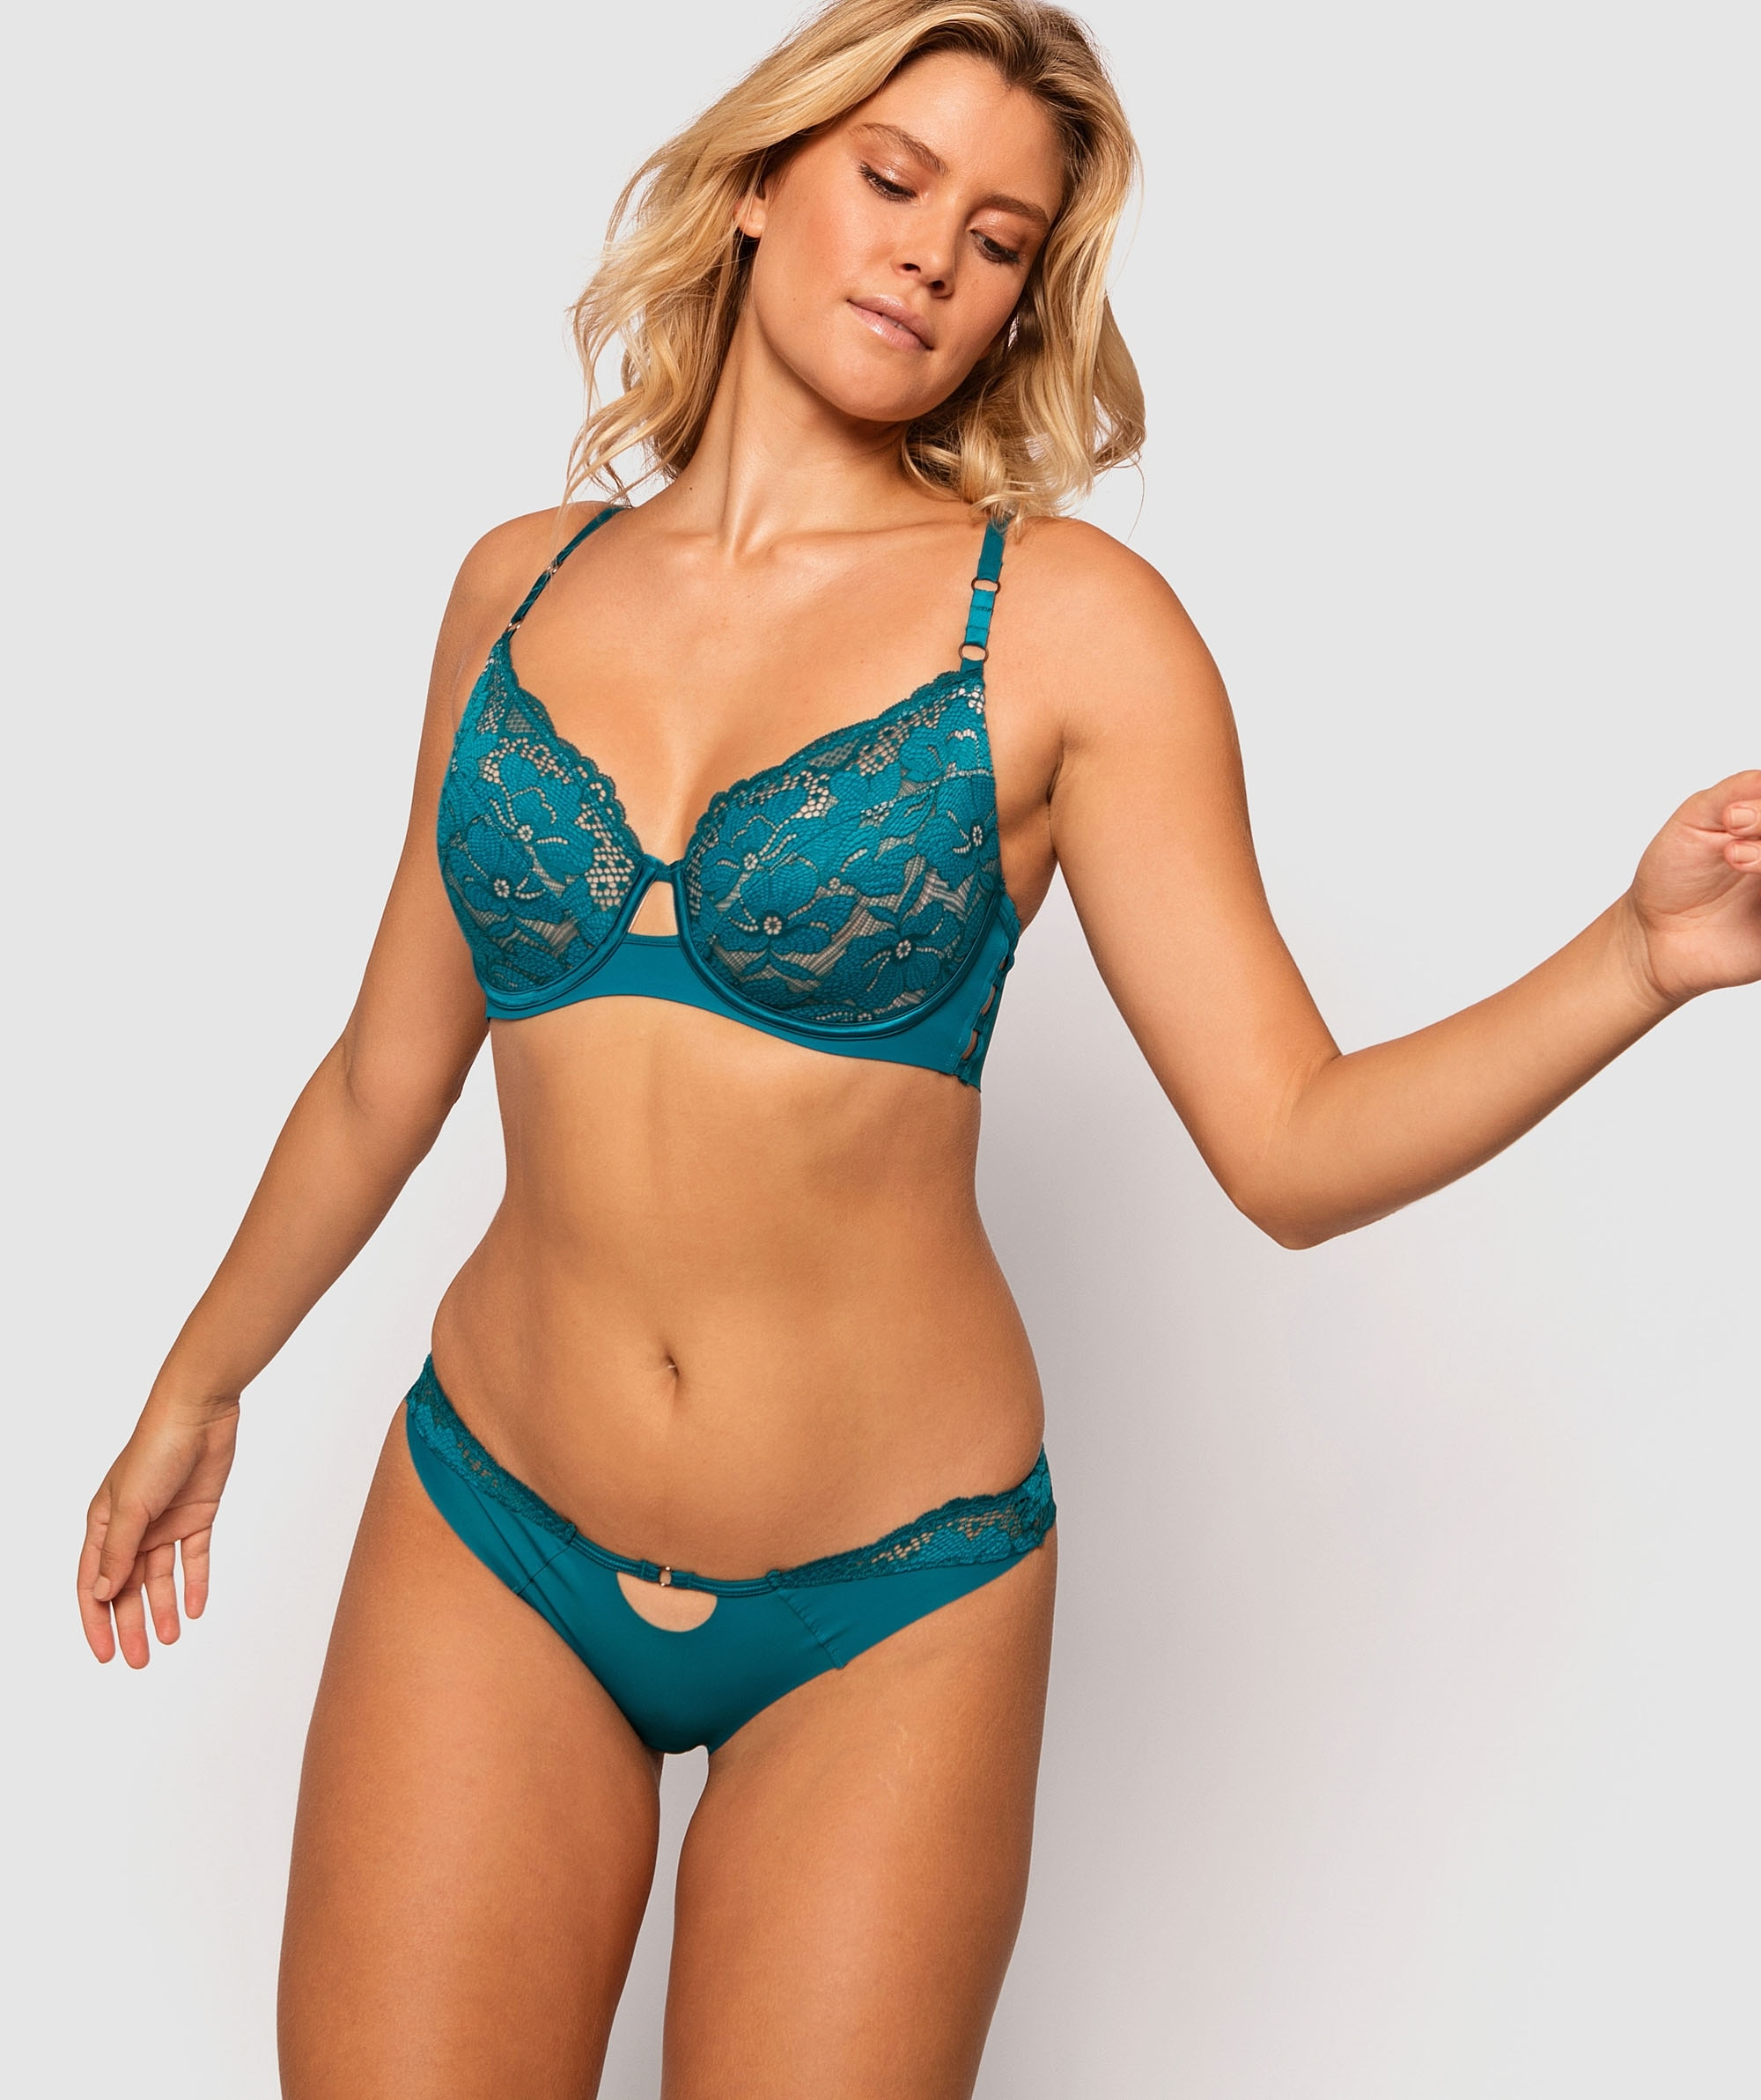 Fashion Sensations Plunge Full Cup Bra - Teal/Nude